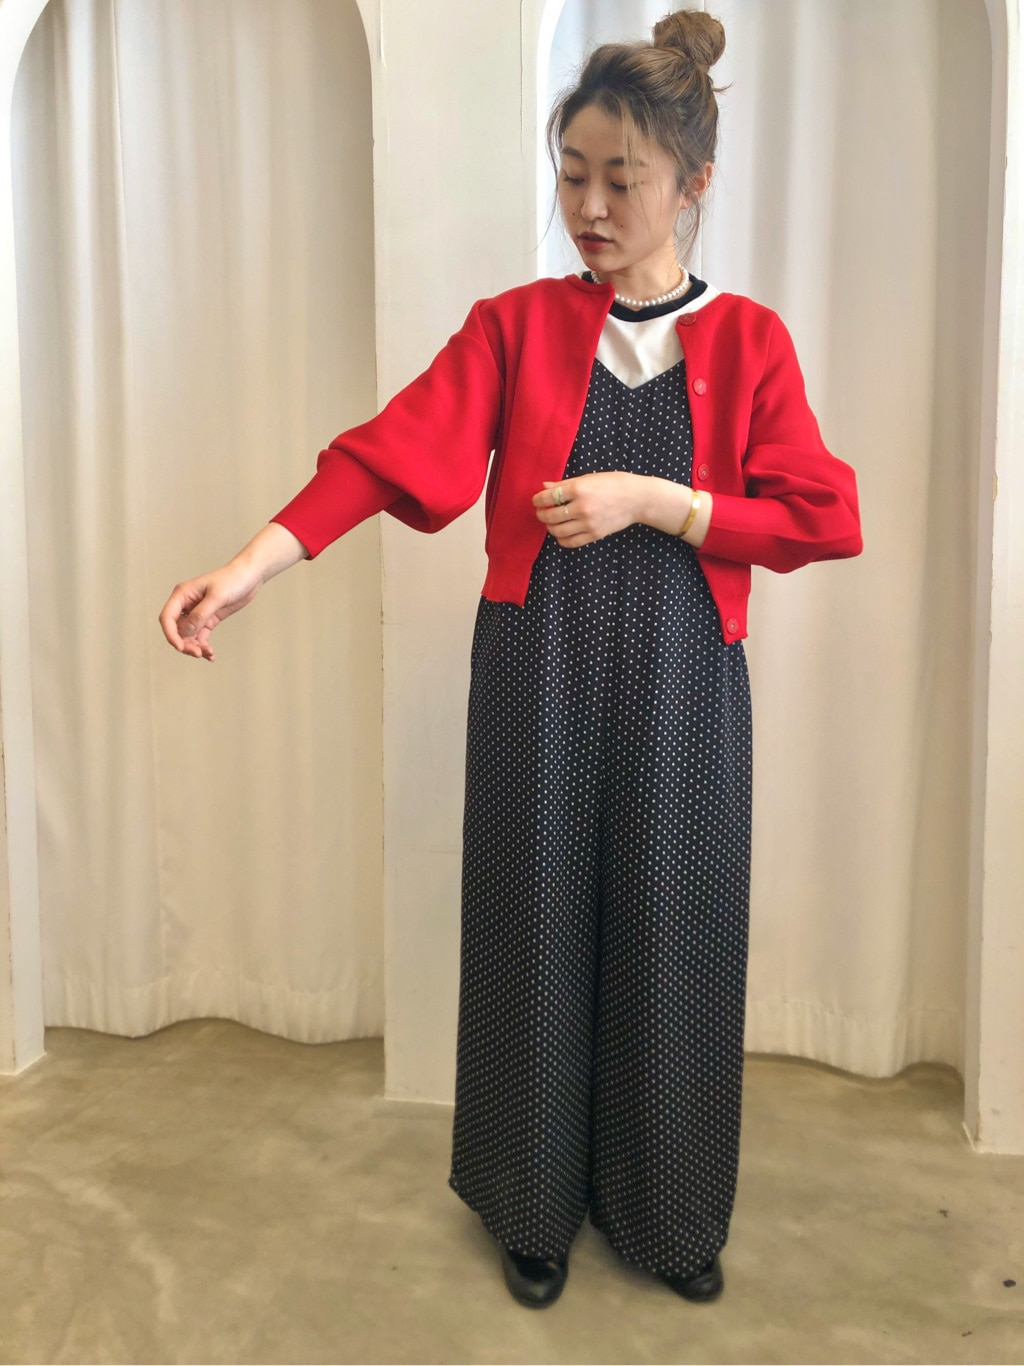 Dot and Stripes CHILD WOMAN ラフォーレ原宿 身長:153cm 2020.09.02